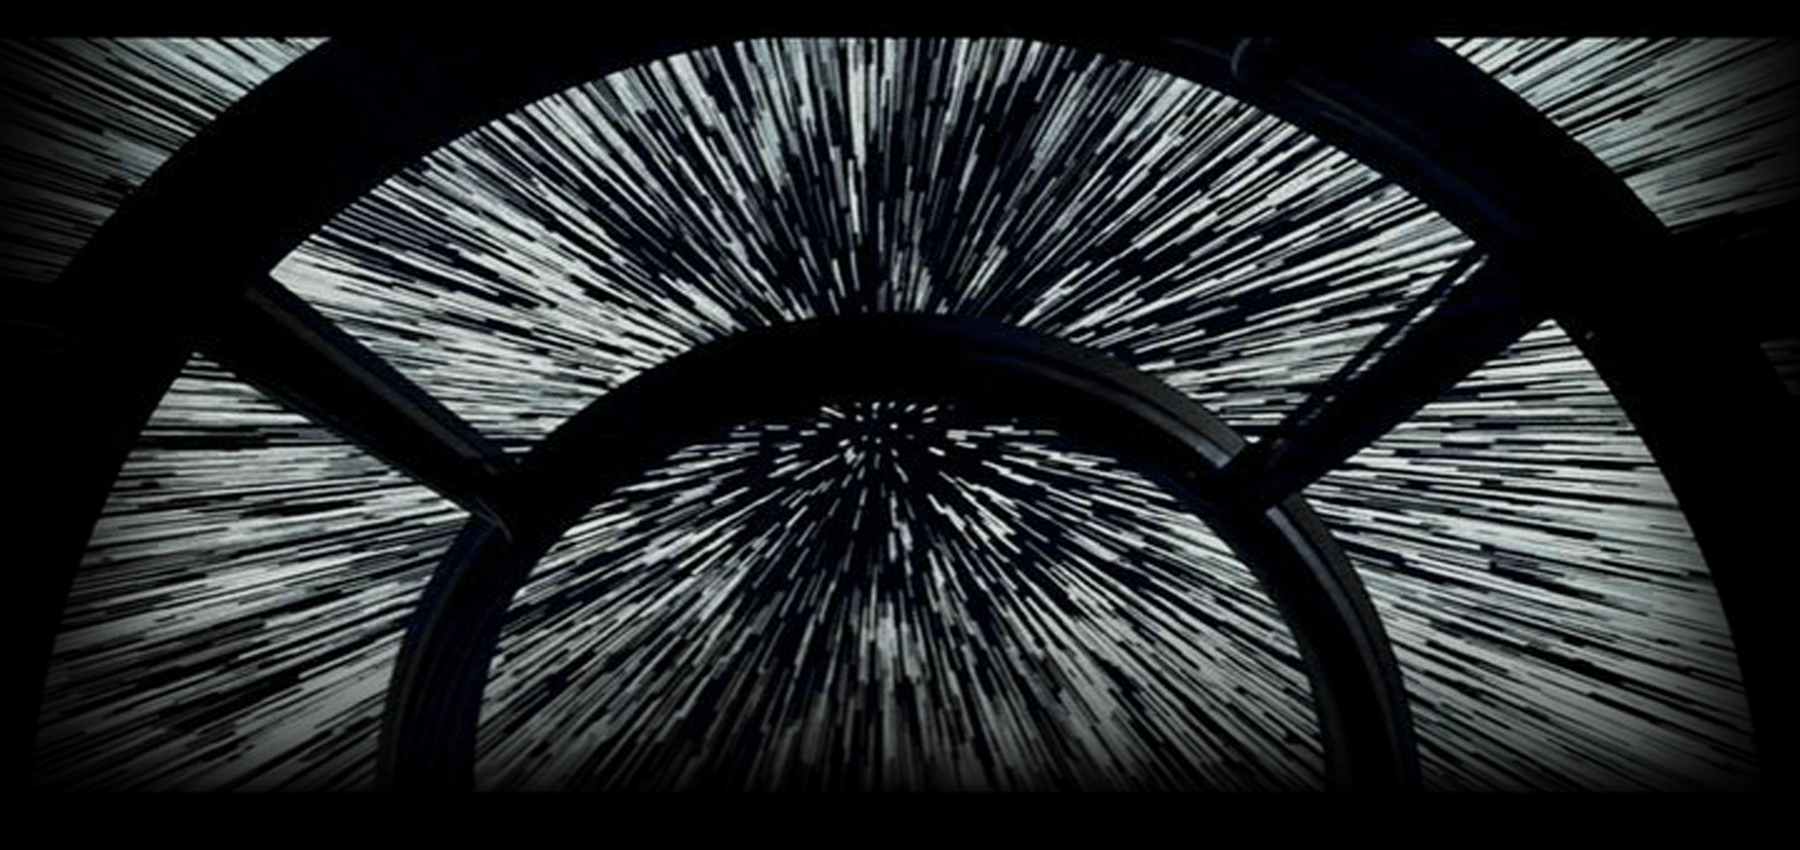 Star Wars Backgrounds.